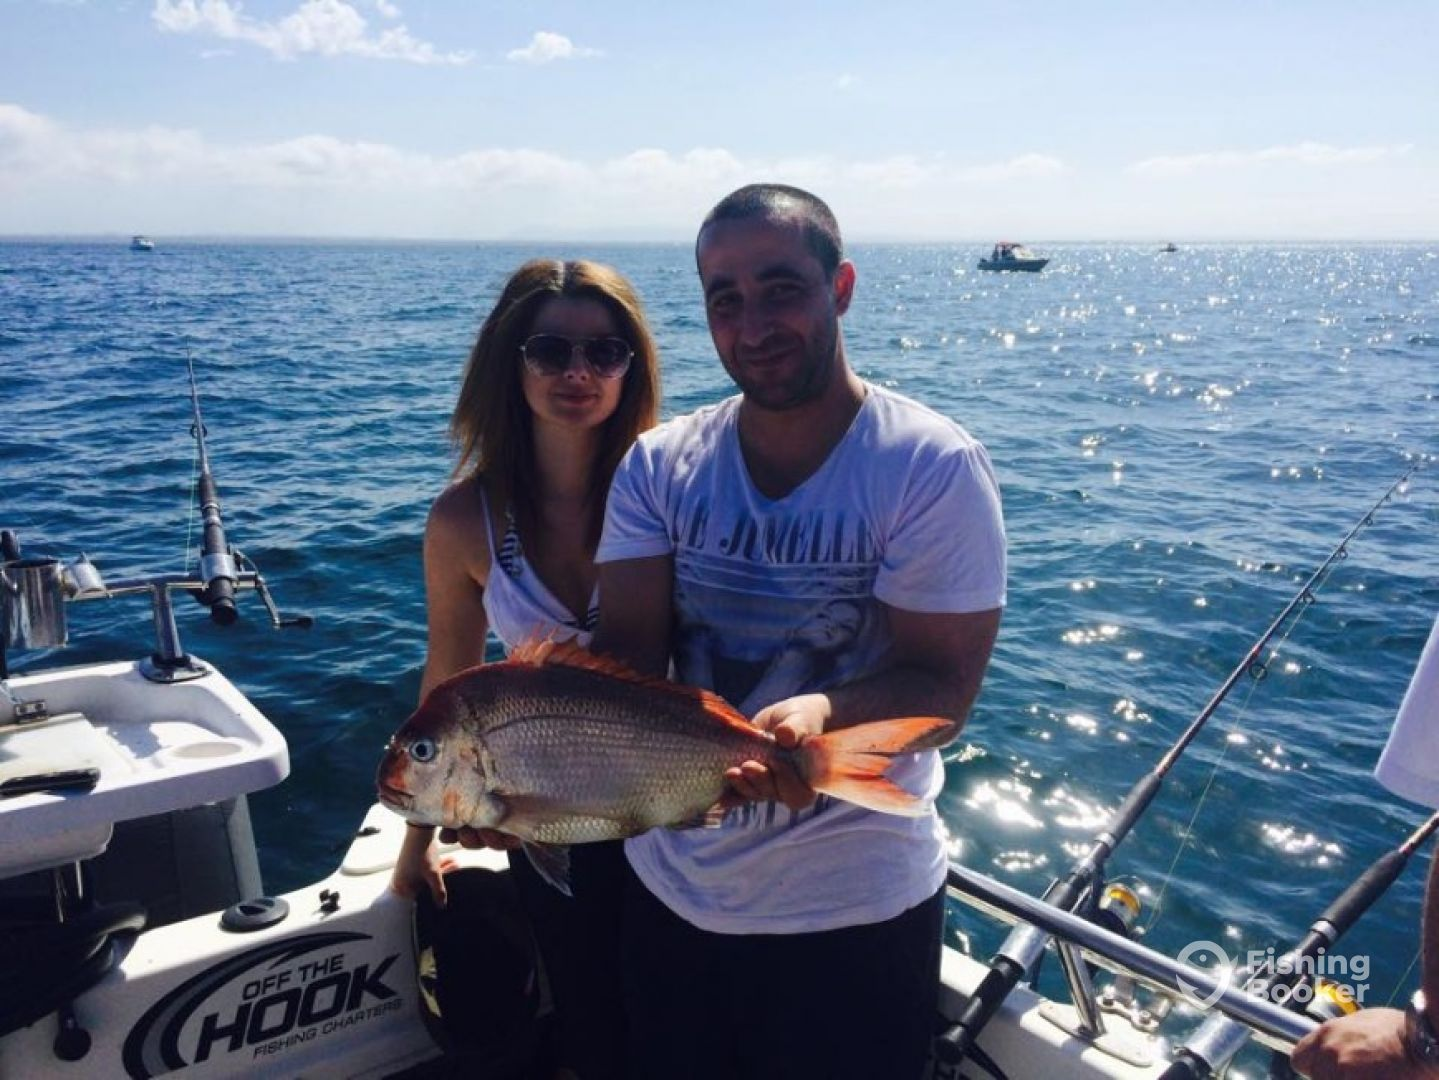 Off the hook fishing charters melbourne australia for Off the hook fishing charters